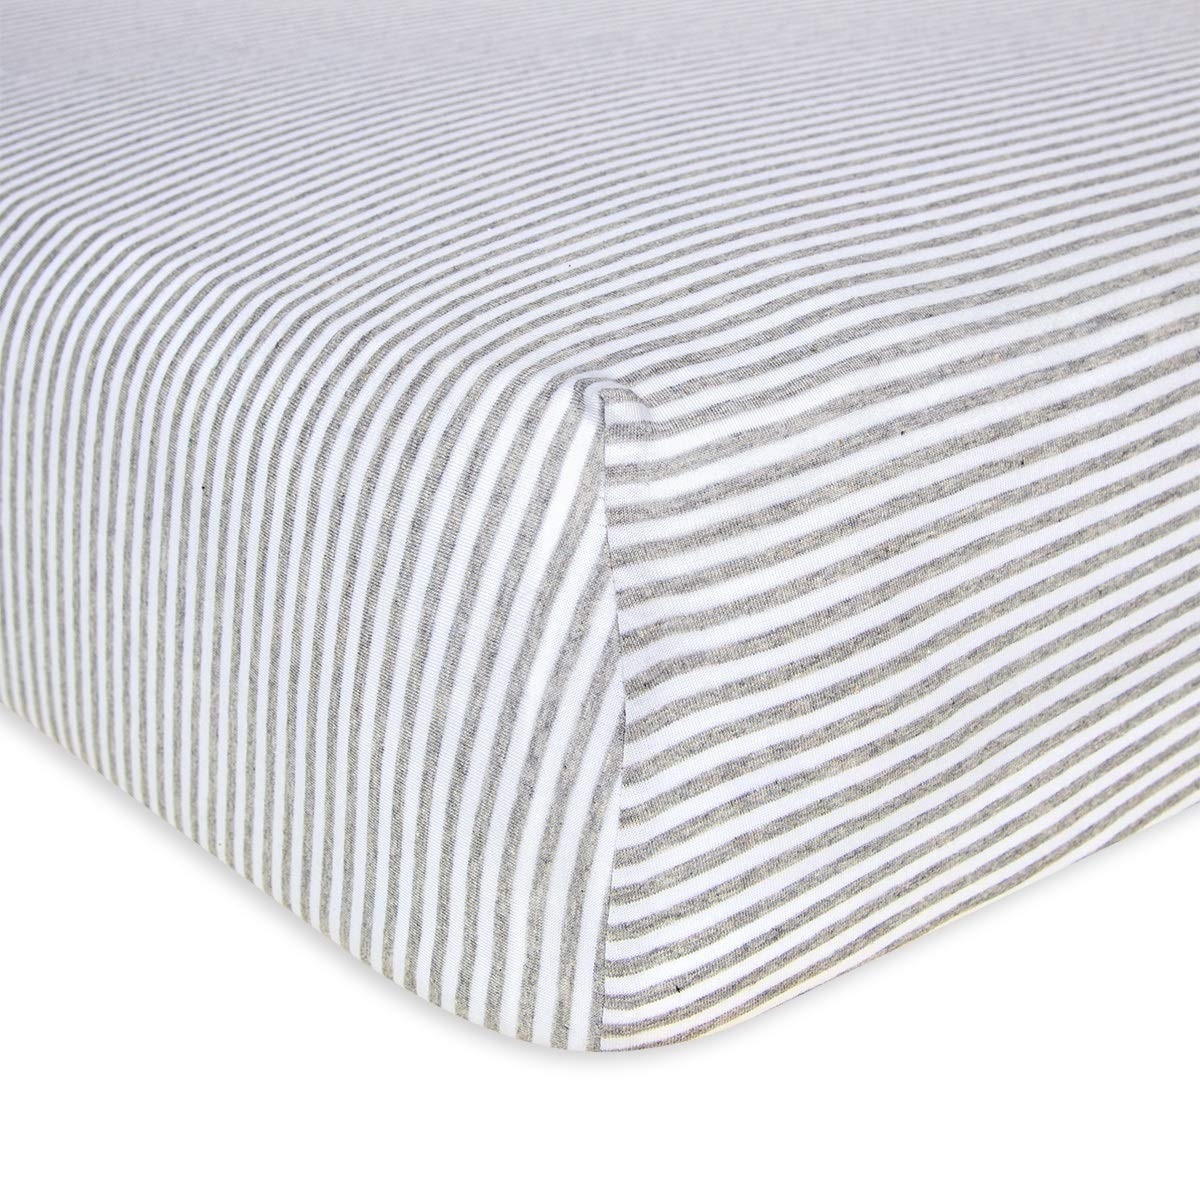 Burt's Bees Baby - Fitted Crib Sheet, Boys & Unisex 100% Organic Cotton Crib Sheet For Standard Crib and Toddler Mattresses (Heather Grey Thin Stripes) by Burt's Bees Baby